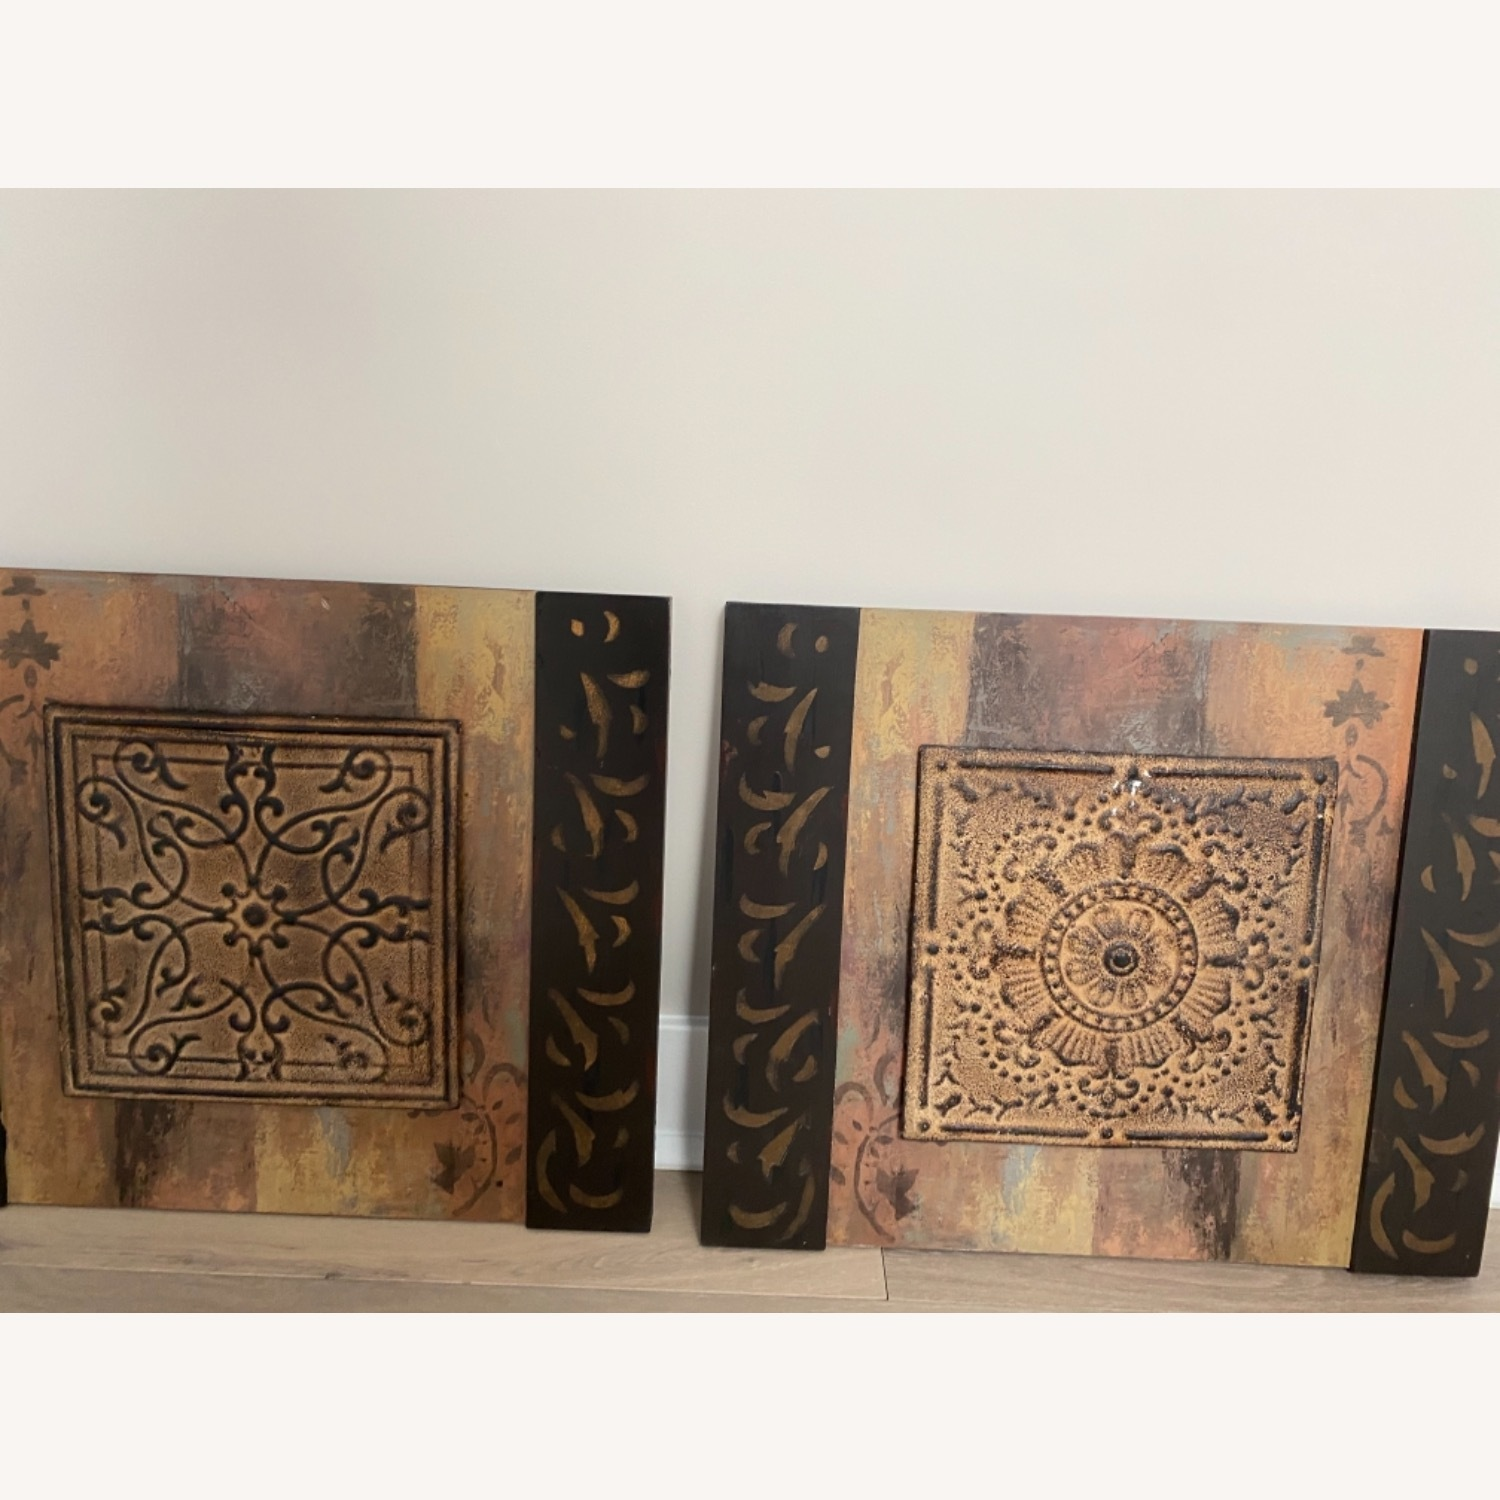 Uttermost Tribal Wall Decor - image-1